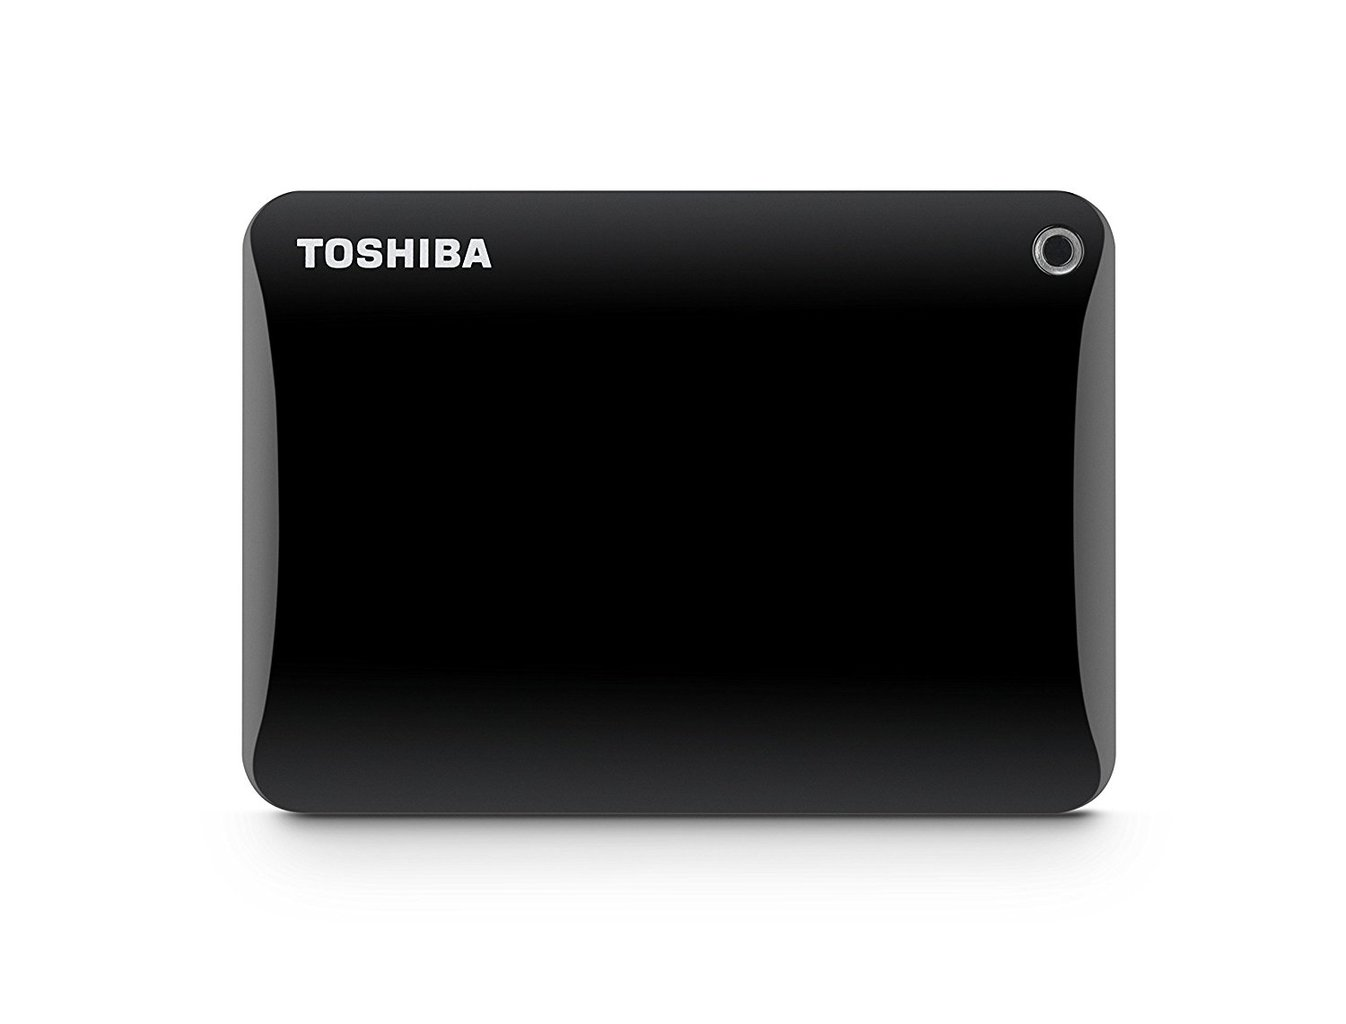 toshiba canvio connect ii 2 fastest external hard drive hdd for xbox one and xbox one S best buy price